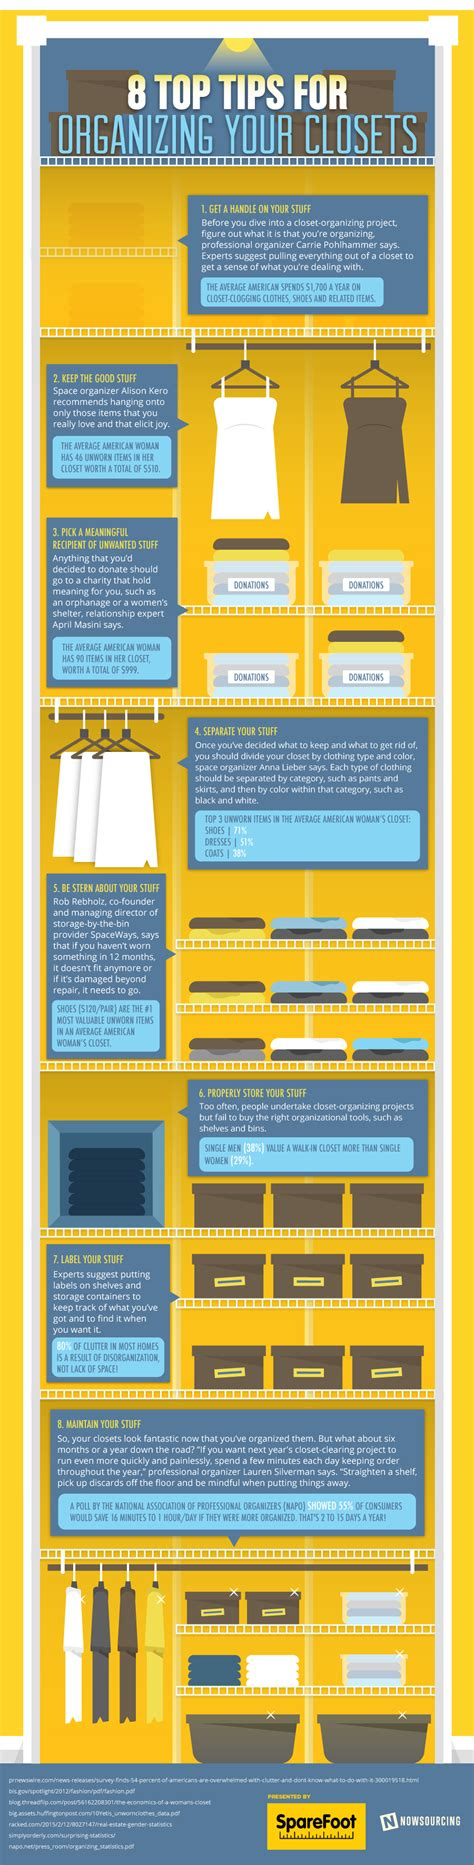 8 Tips For Reorganizing Your Closet by 8 Top Tips For Organizing Your Closet Infographic